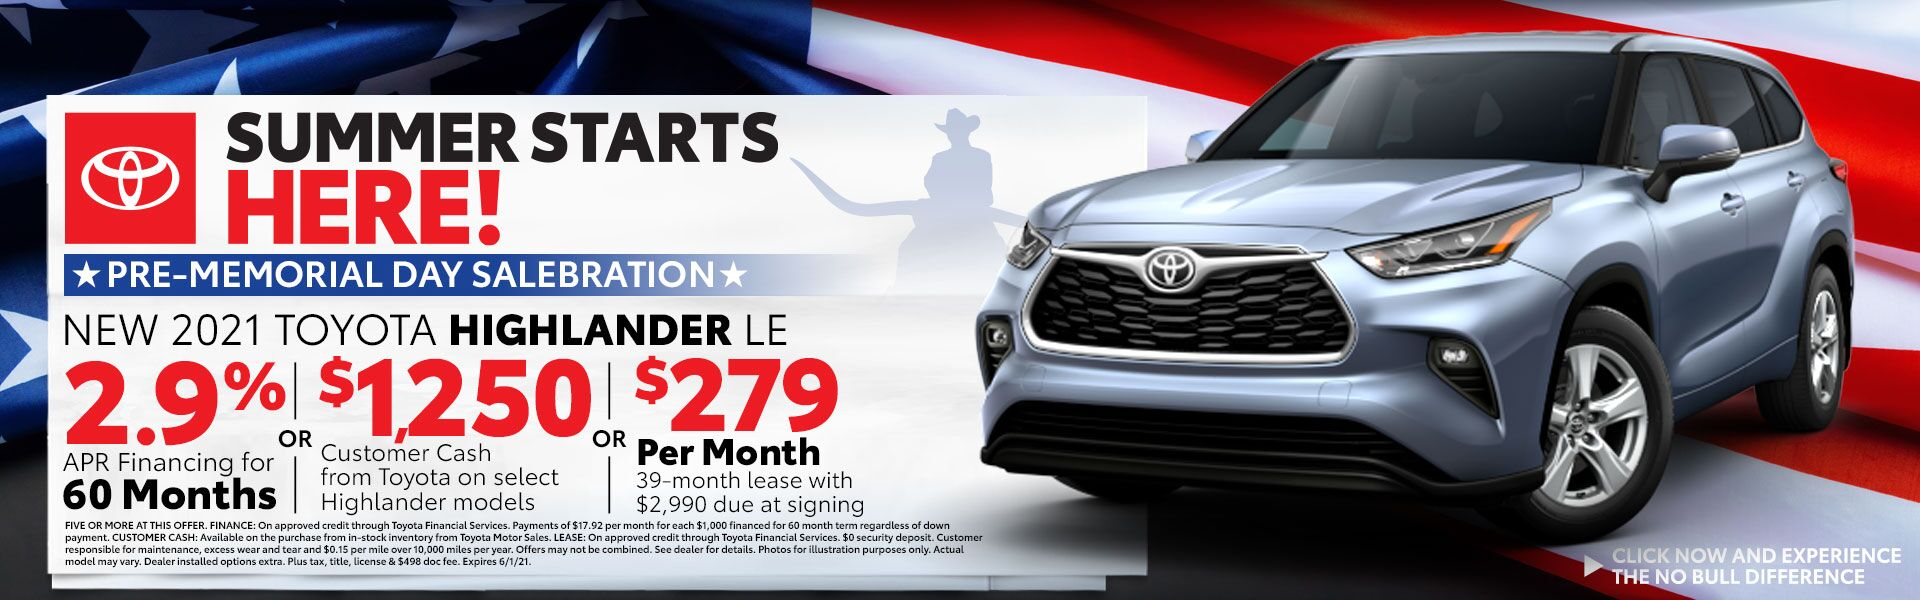 2021 Toyota Highlander Special Offer